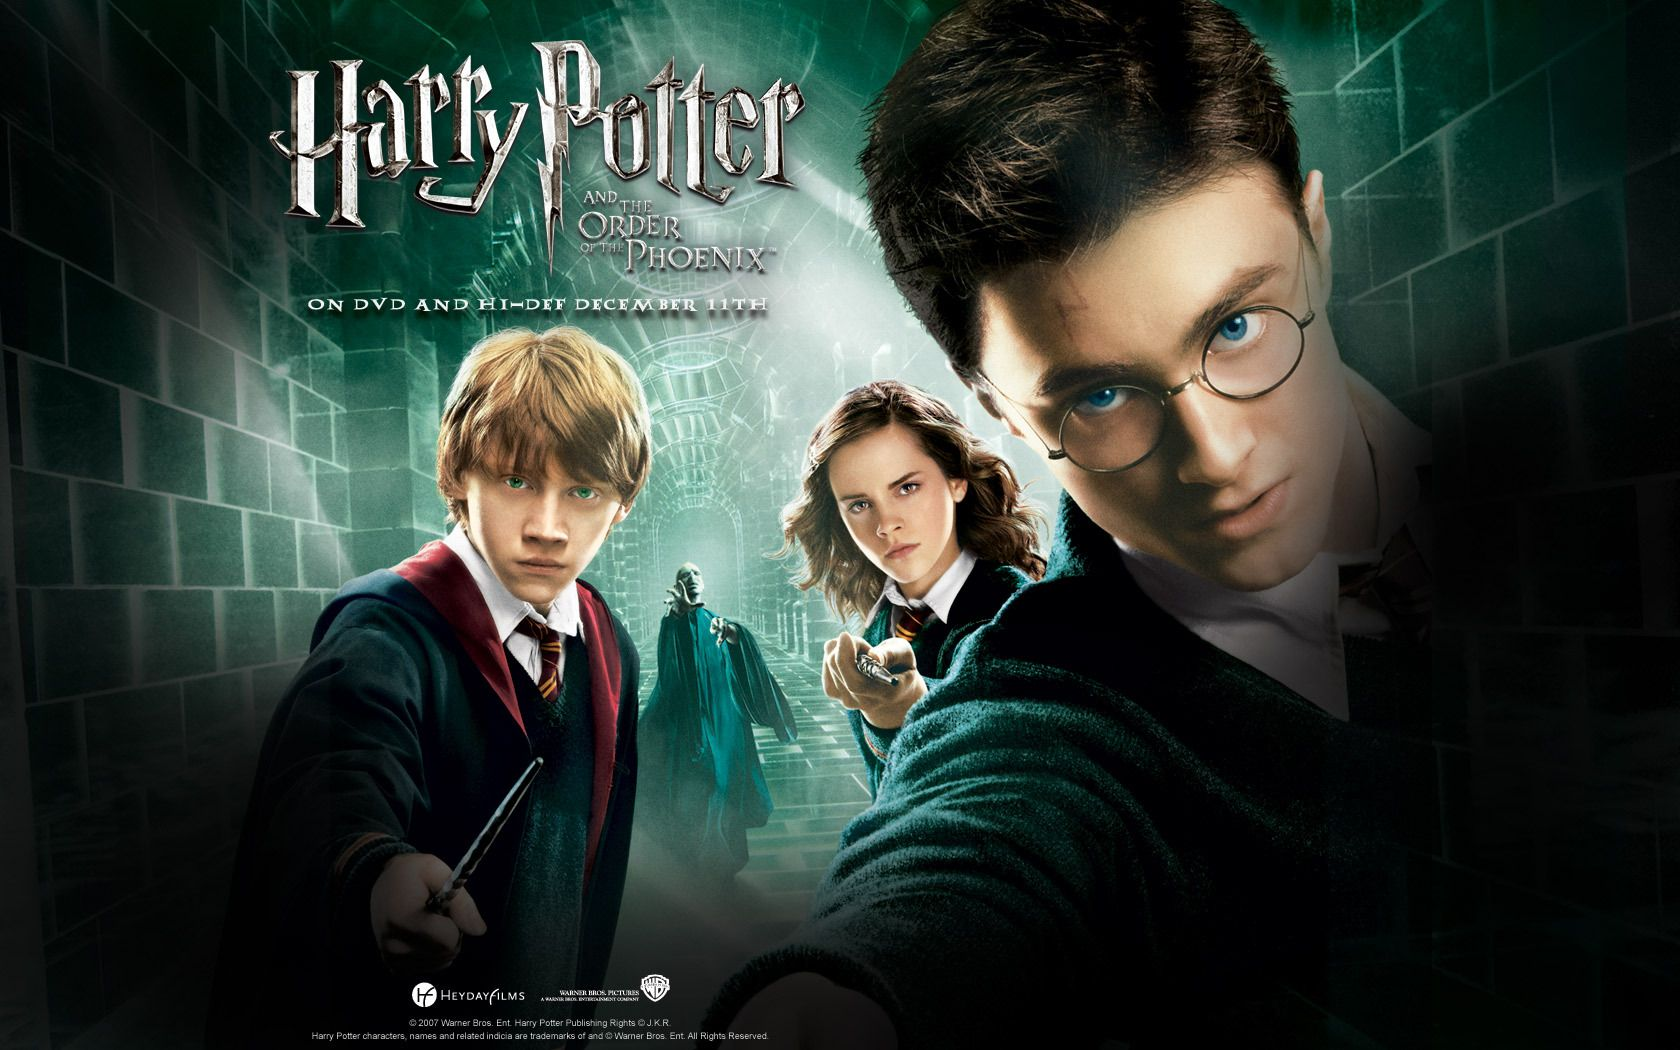 Free Download Harry Potter And The Order Of The Phoenix 2007 Hd Movie Online From Hd Harry Potter Ron Weasley Ron Weasley Hermione Granger Harry Potter Sirius